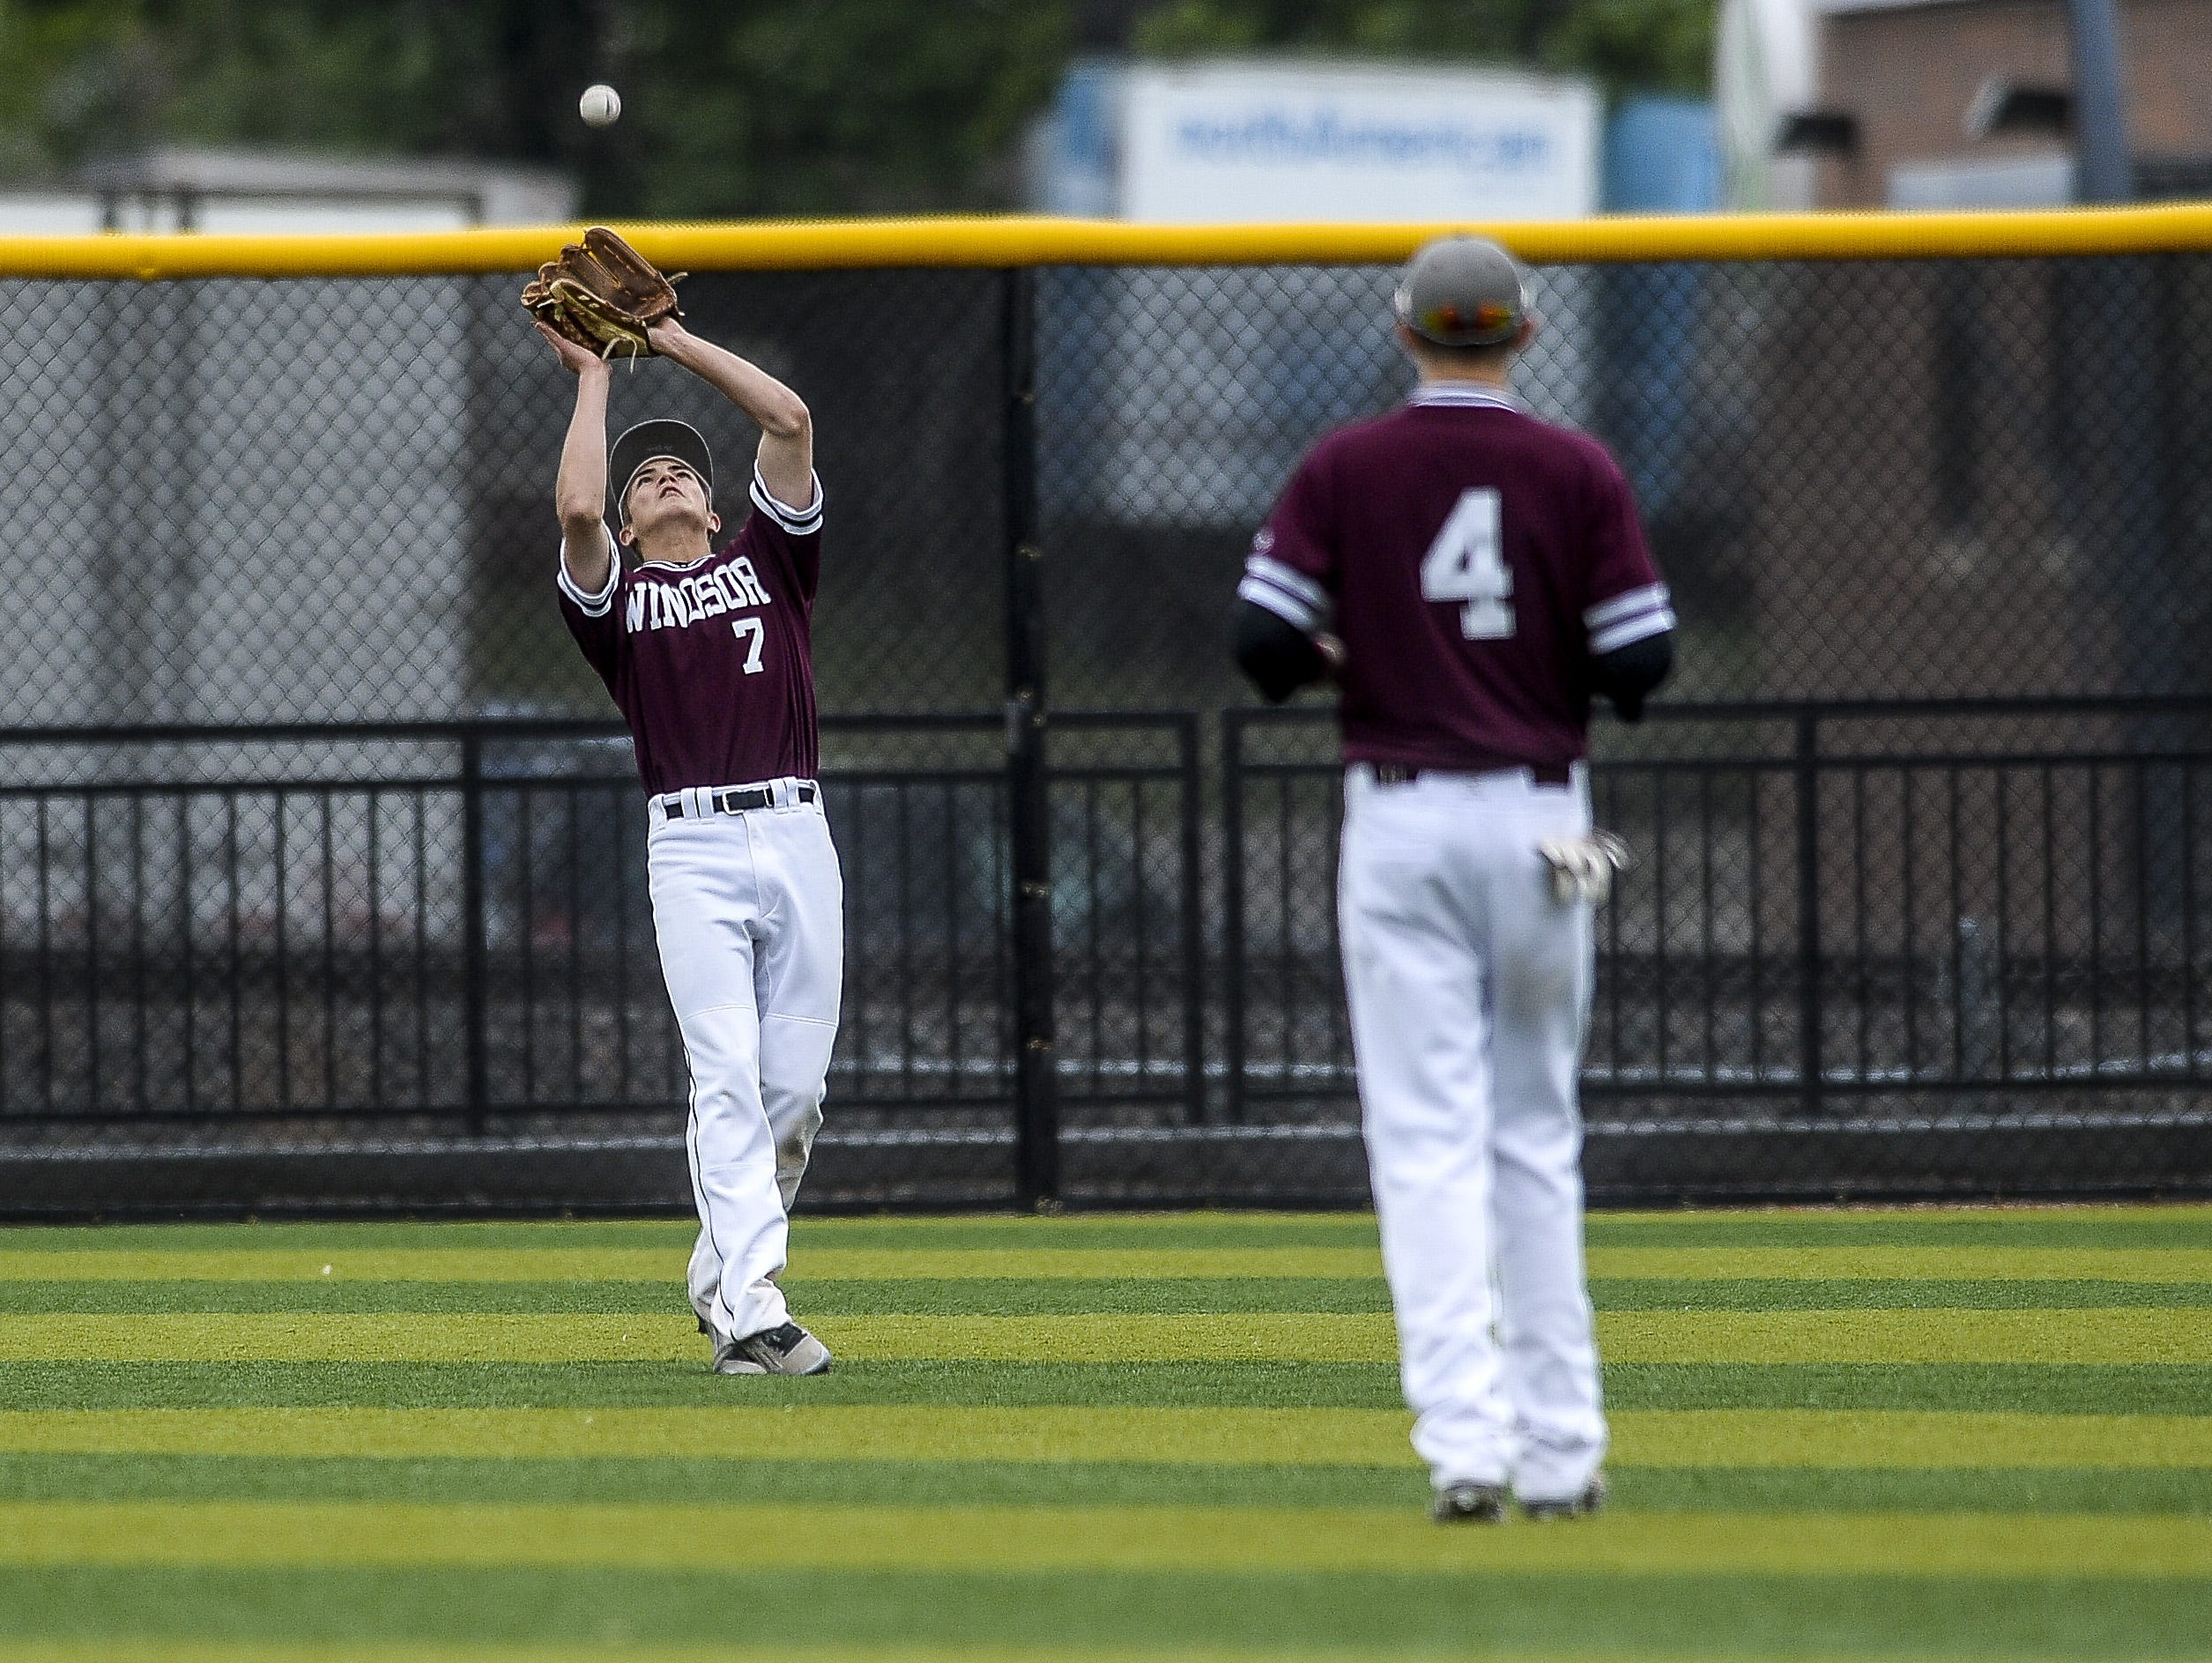 Thursday's Windsor baseball game is one of many high school games postponed due to snow.